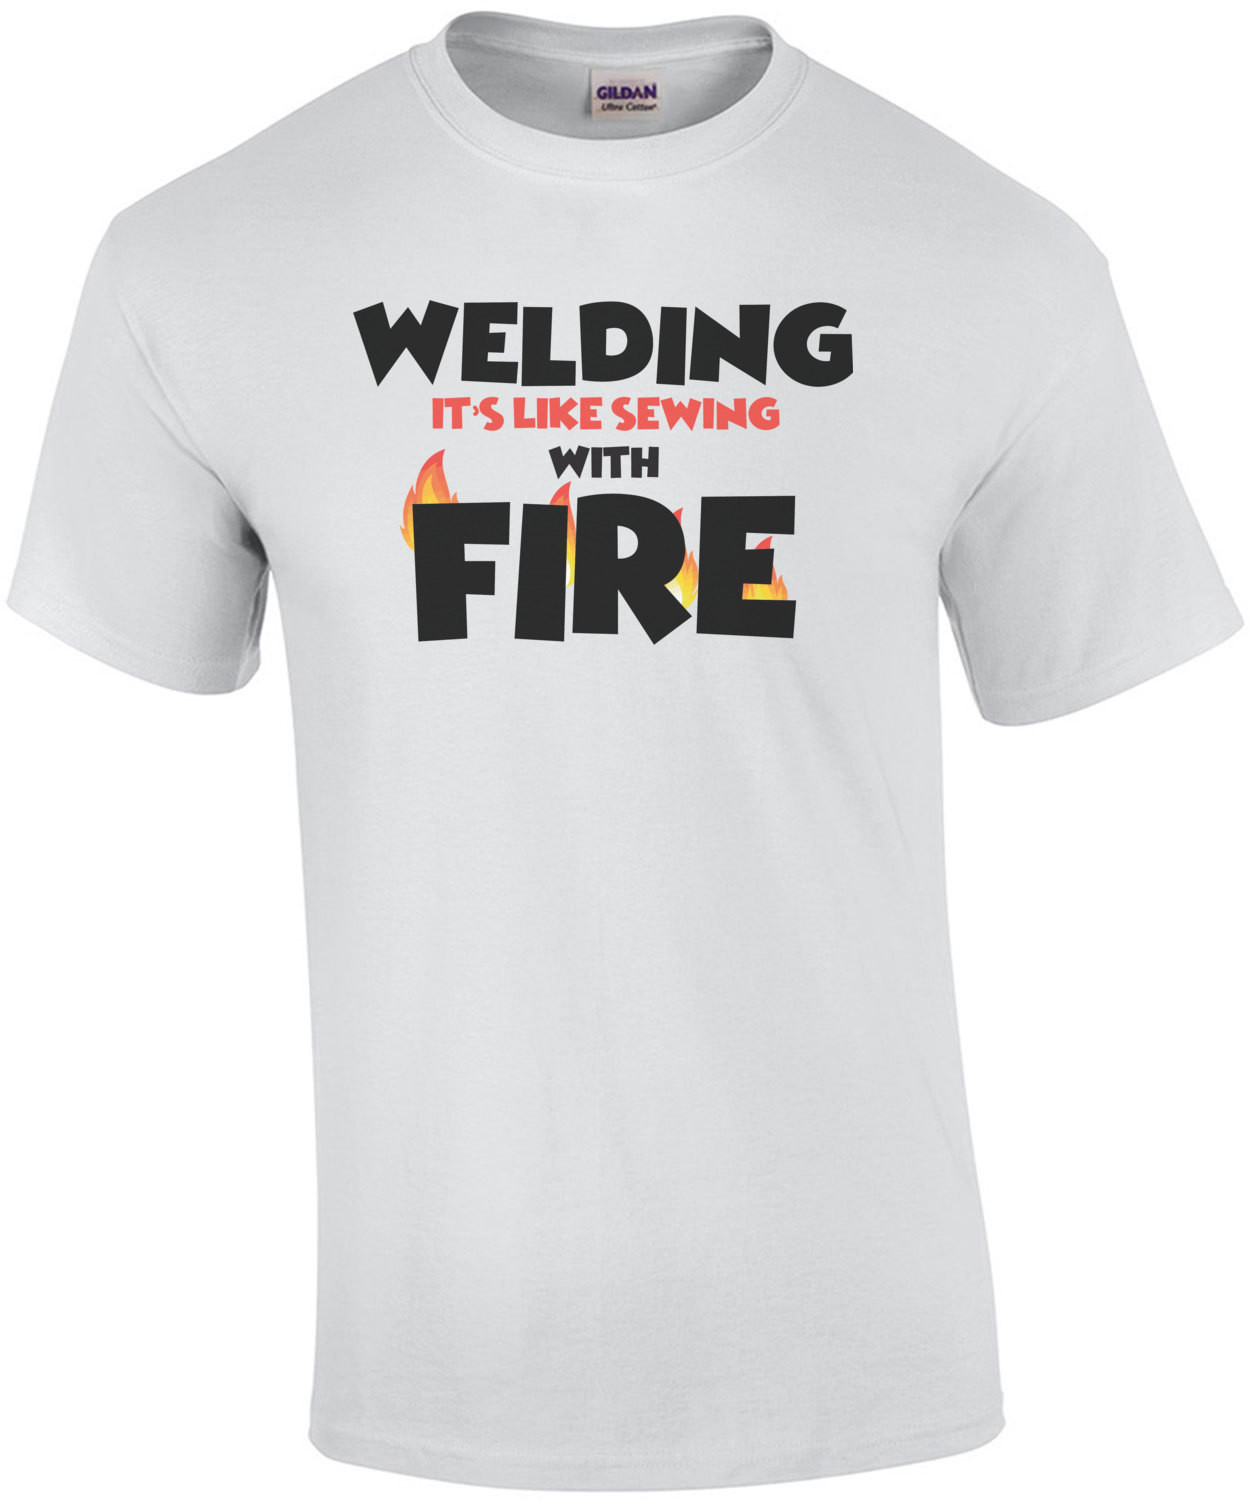 Welding is like sewing with fire - welding shirt - funny welder t-shirt